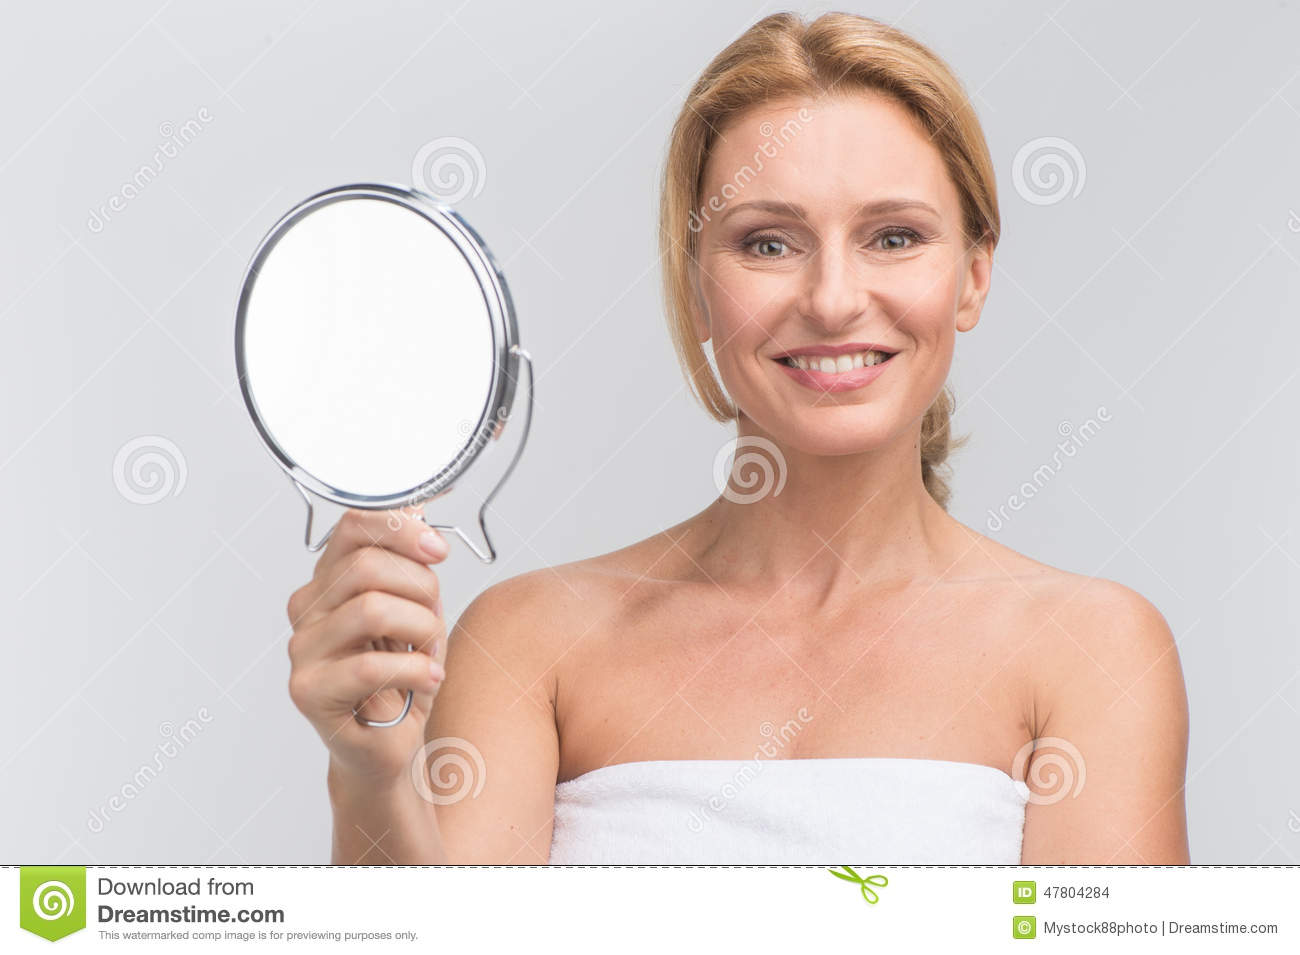 woman holding mirror. Unique Woman Download Comp With Woman Holding Mirror G